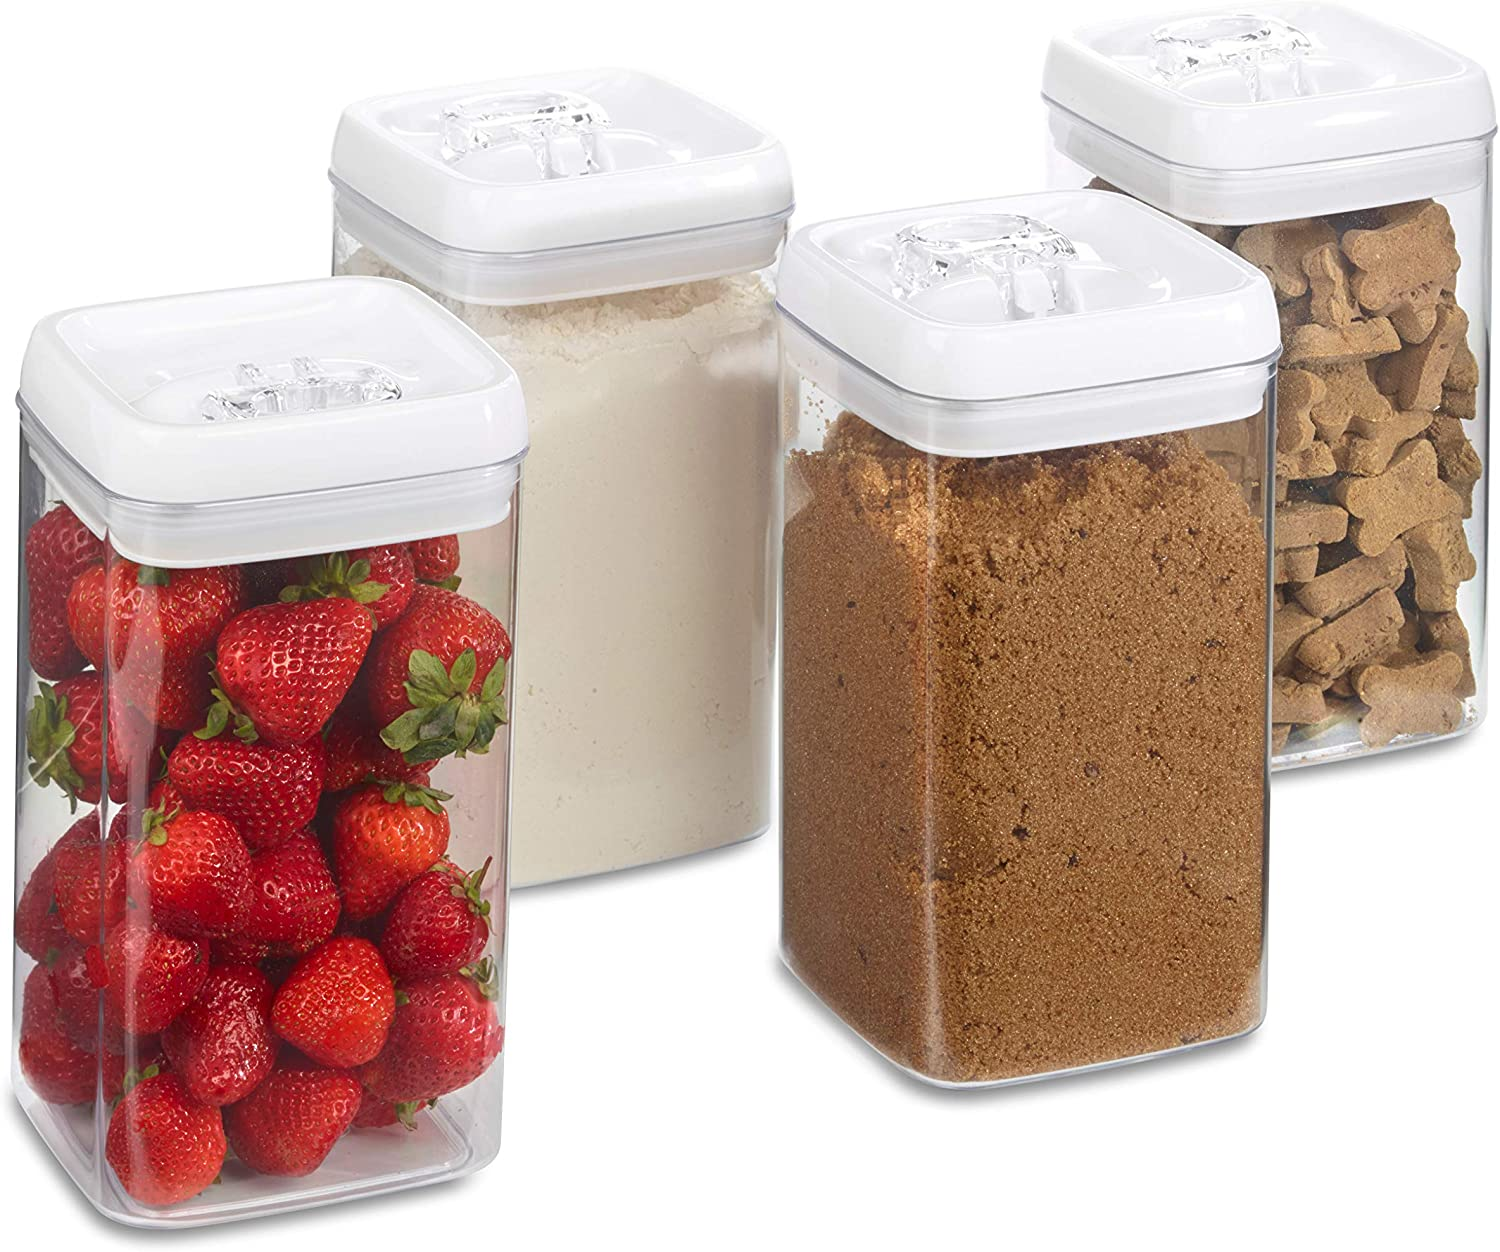 1790 Dry Food Storage Containers - AirTight Containers - 0.5 gallon (4 Pack)